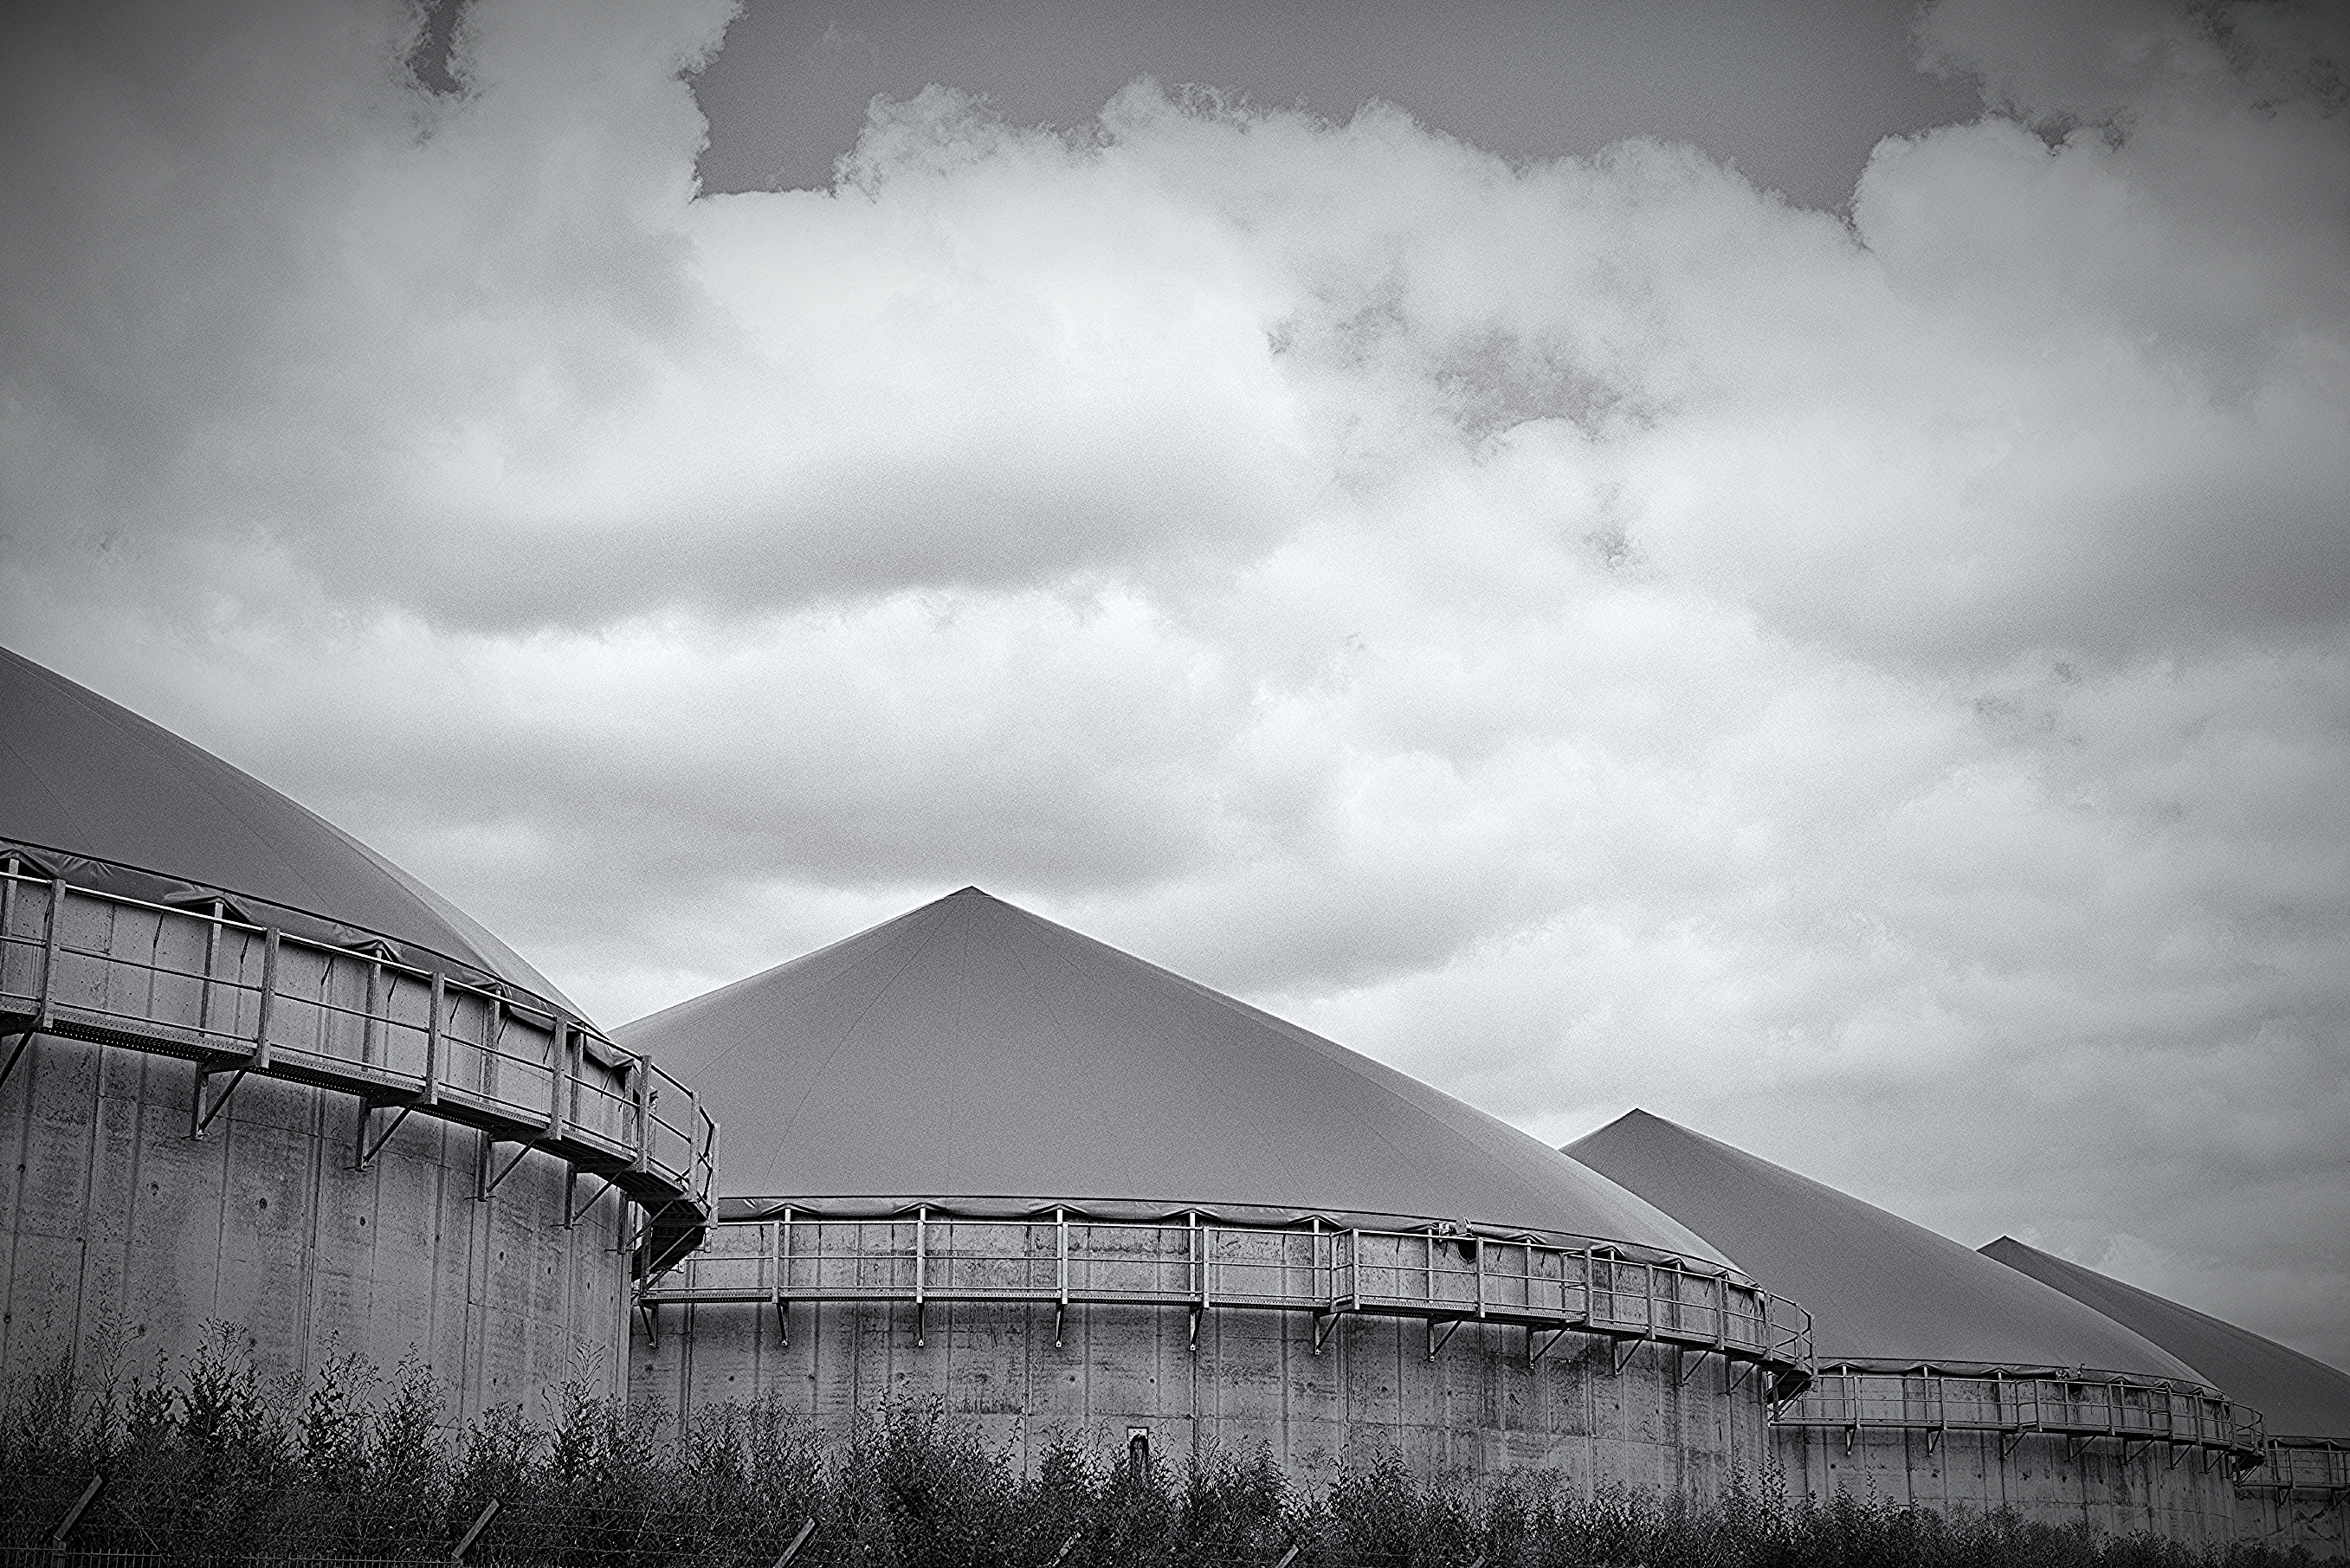 Flood Risk Assessment for Biogas or Anaerobic Digestion